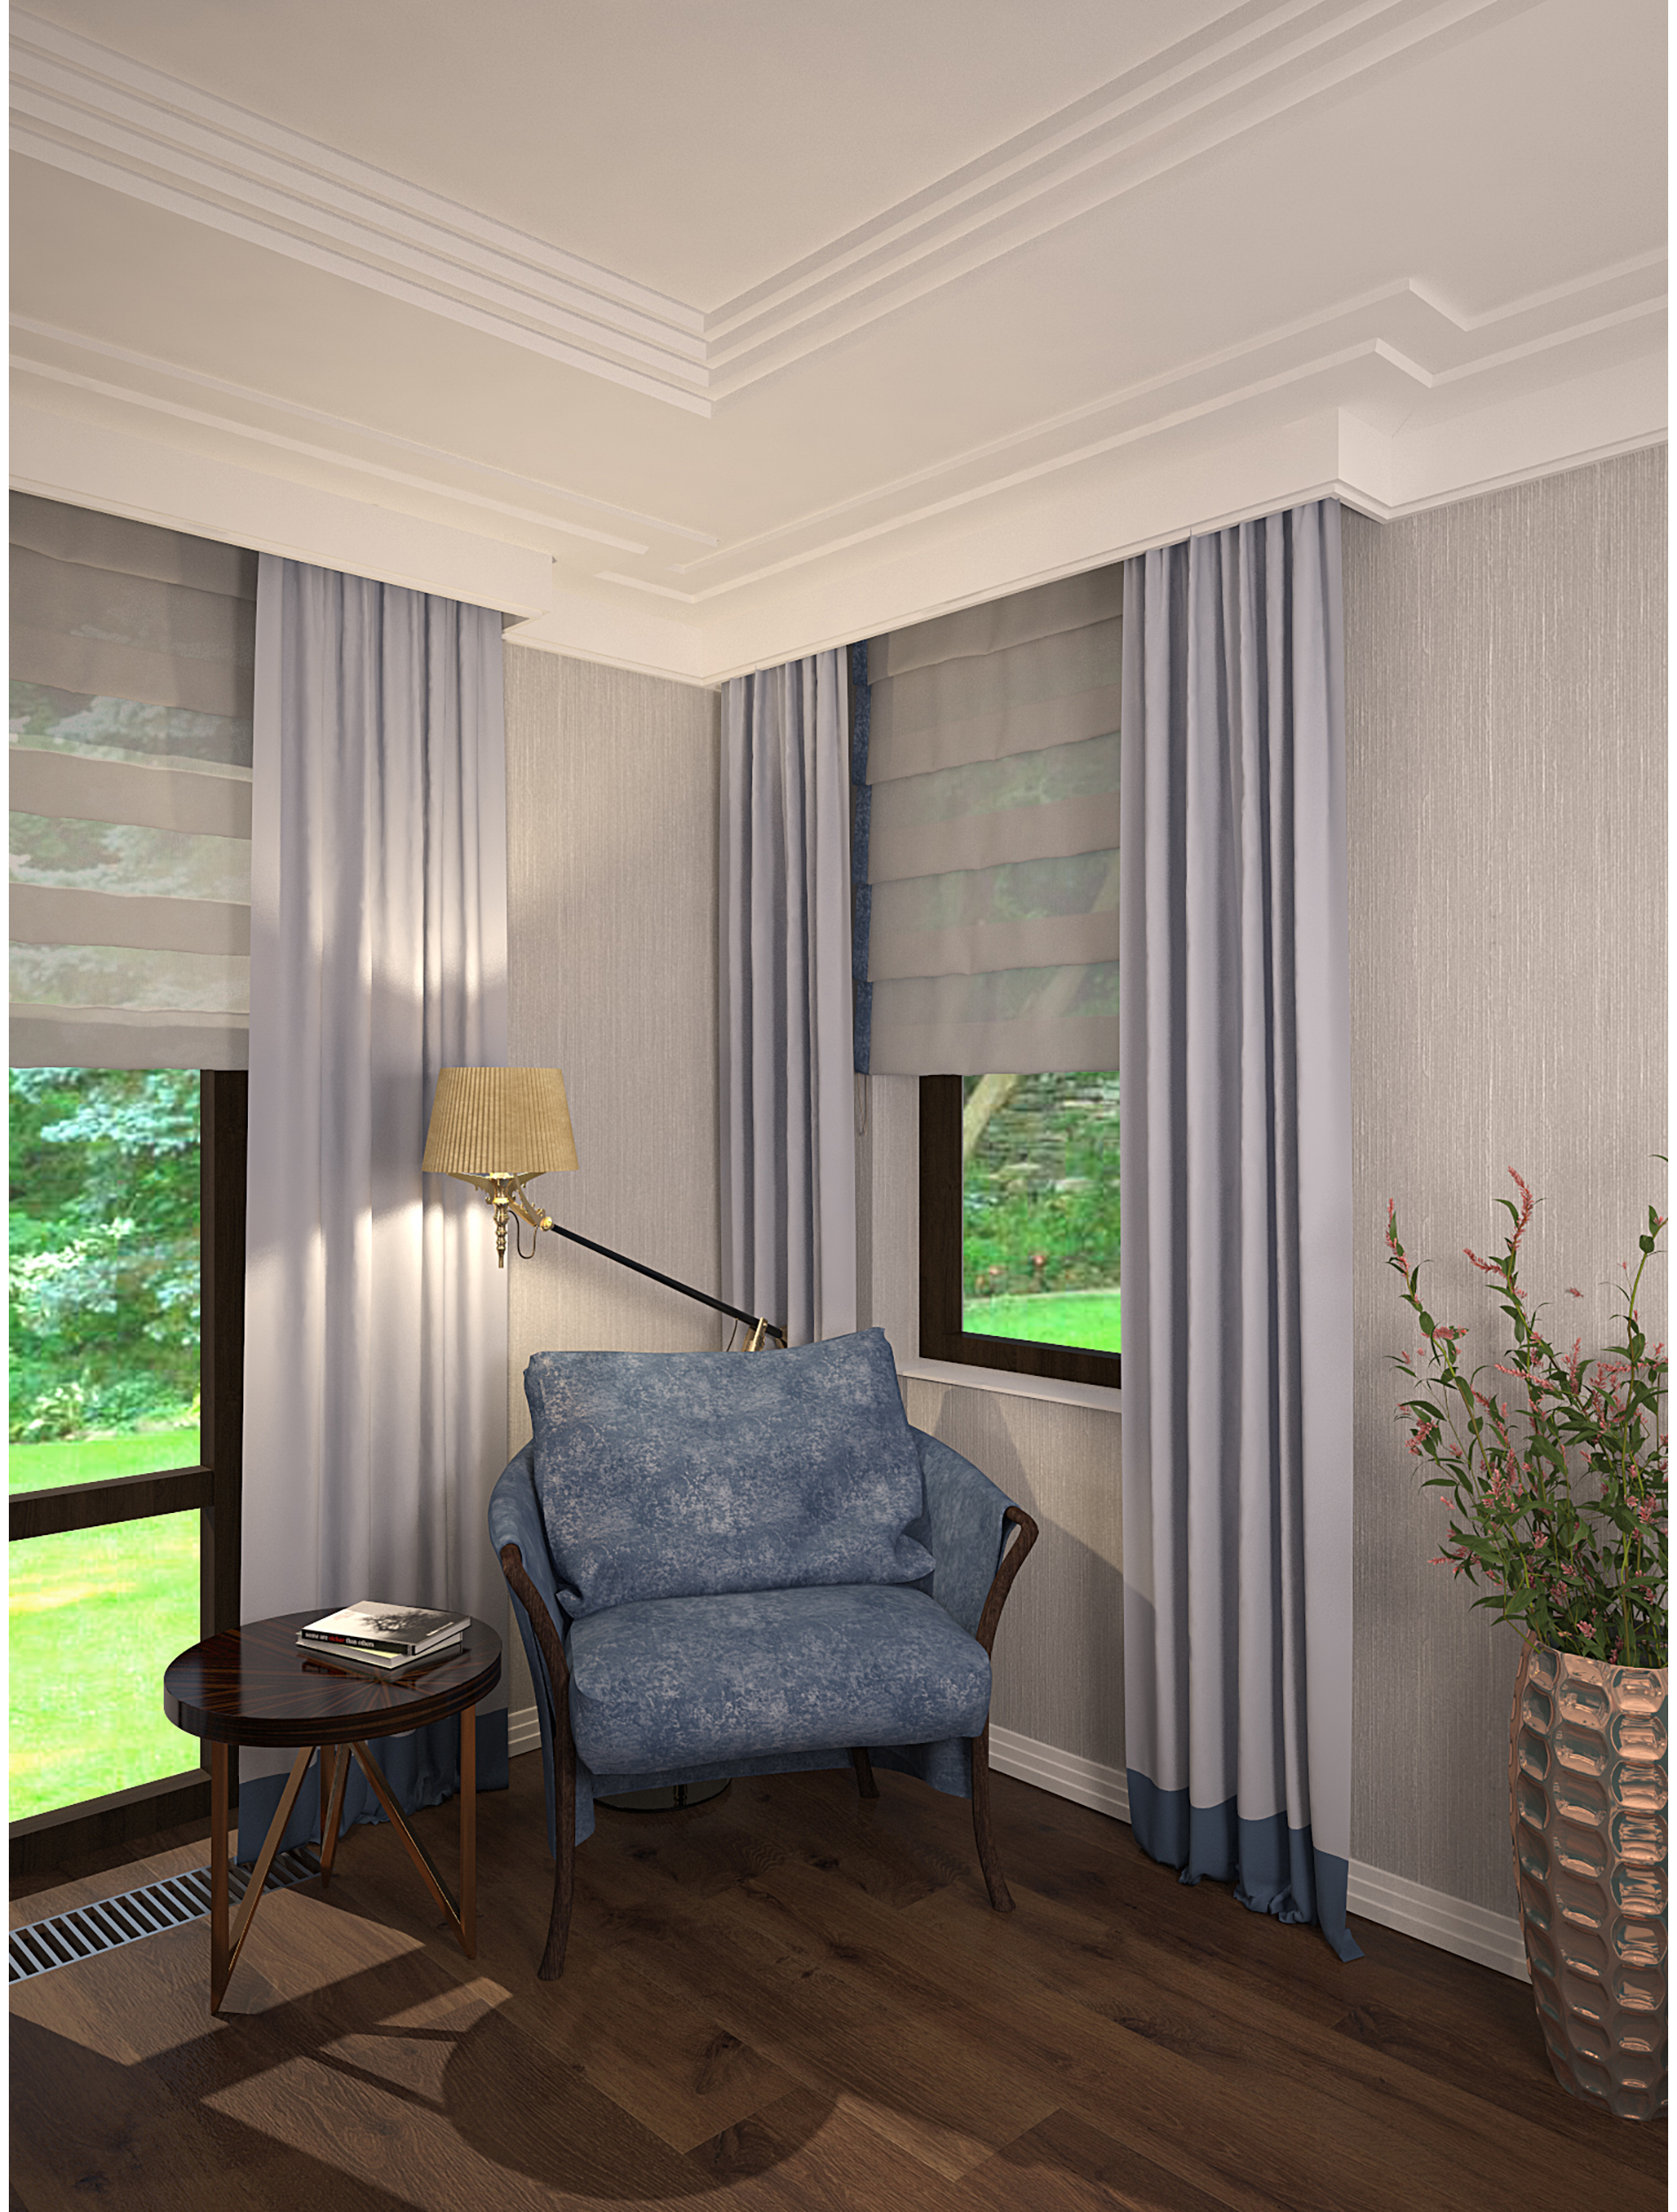 Copy of Living room interior inspired by art deco style